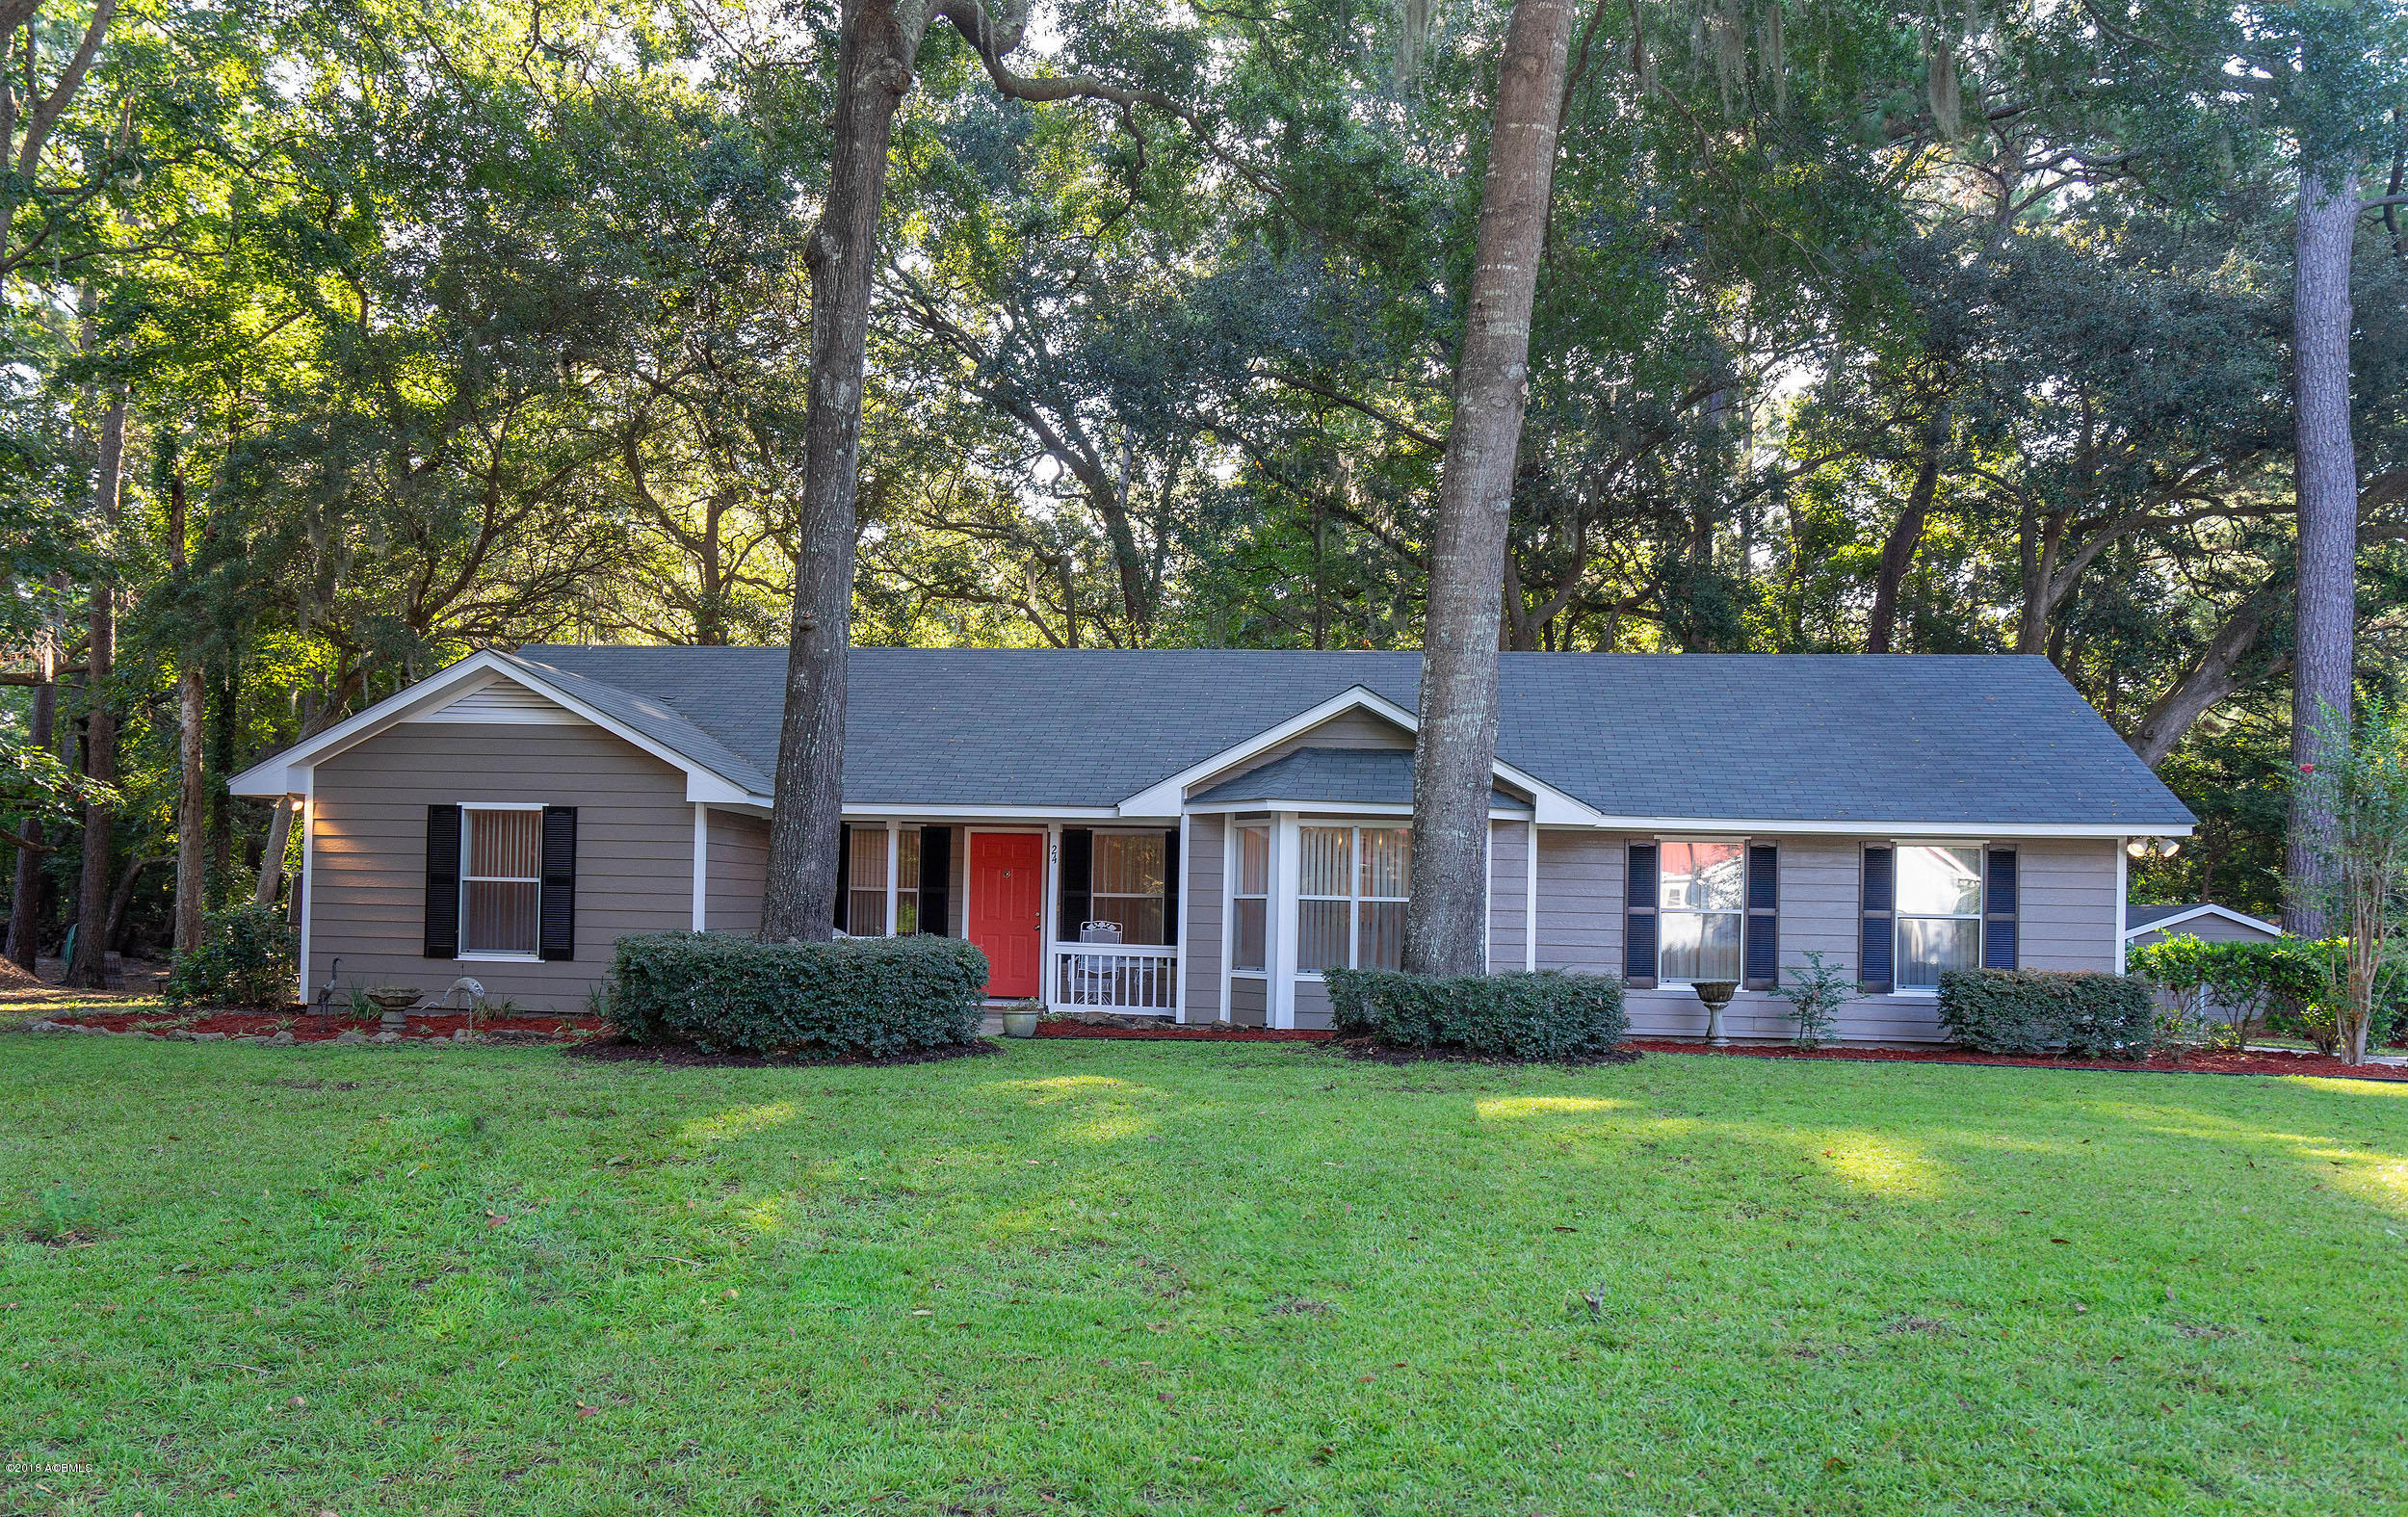 Photo of 24 Walnut Hill Street, Beaufort, SC 29907